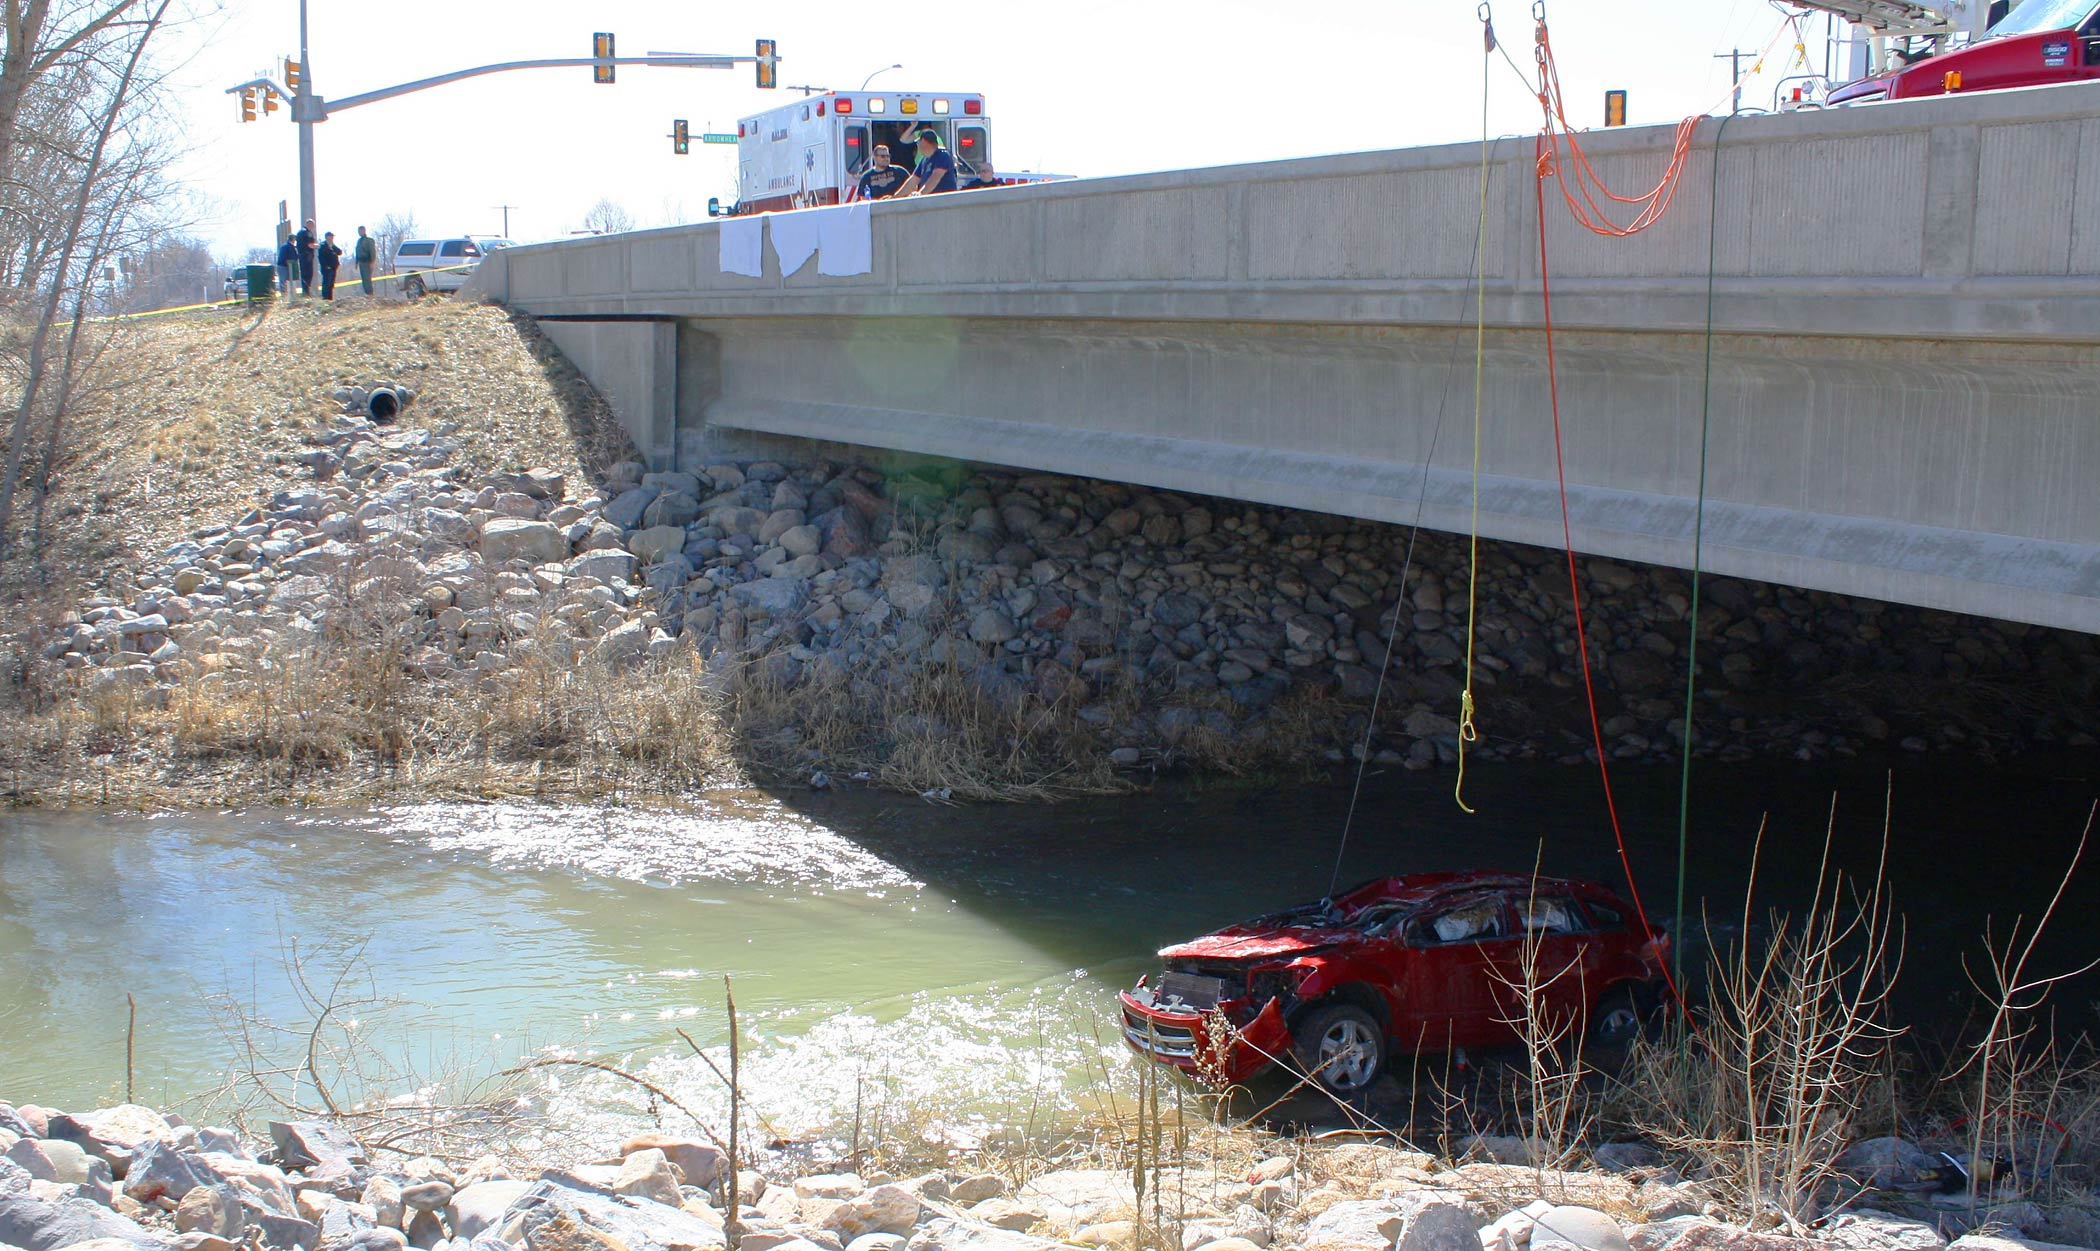 Emergency crews at the site where a vehicle plunged off a bridge into the Spanish fork River.